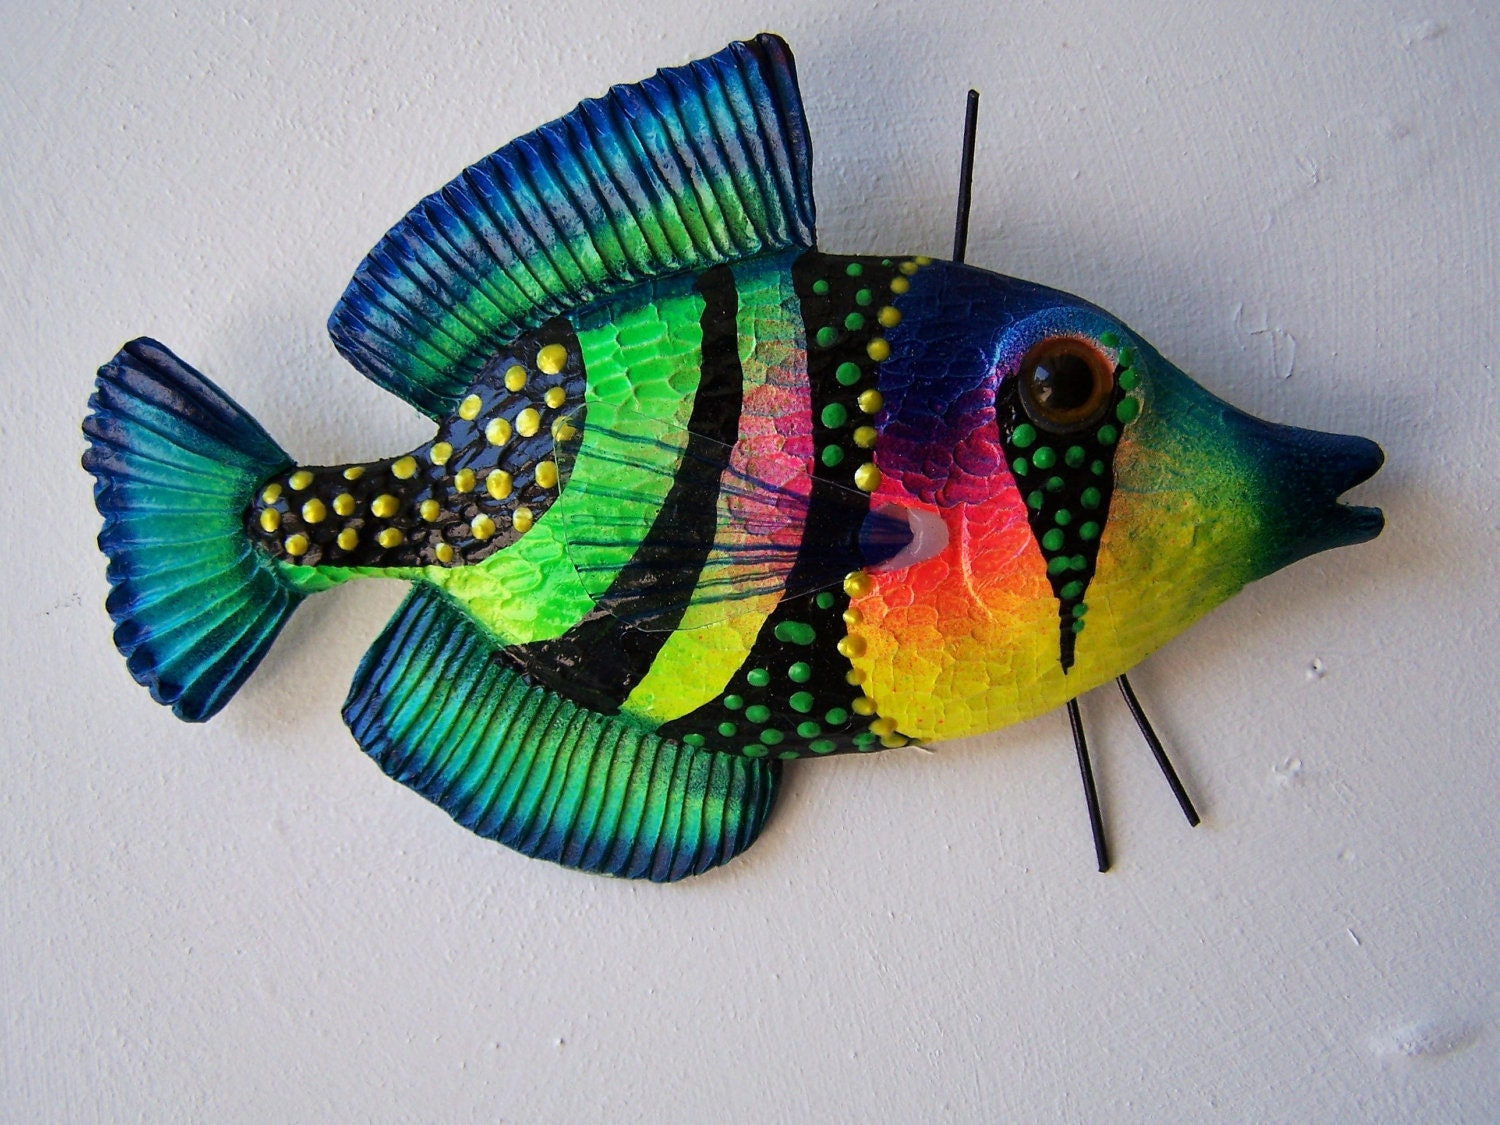 Wall Decor With Fish : Fish art wall decor colorful sculpture